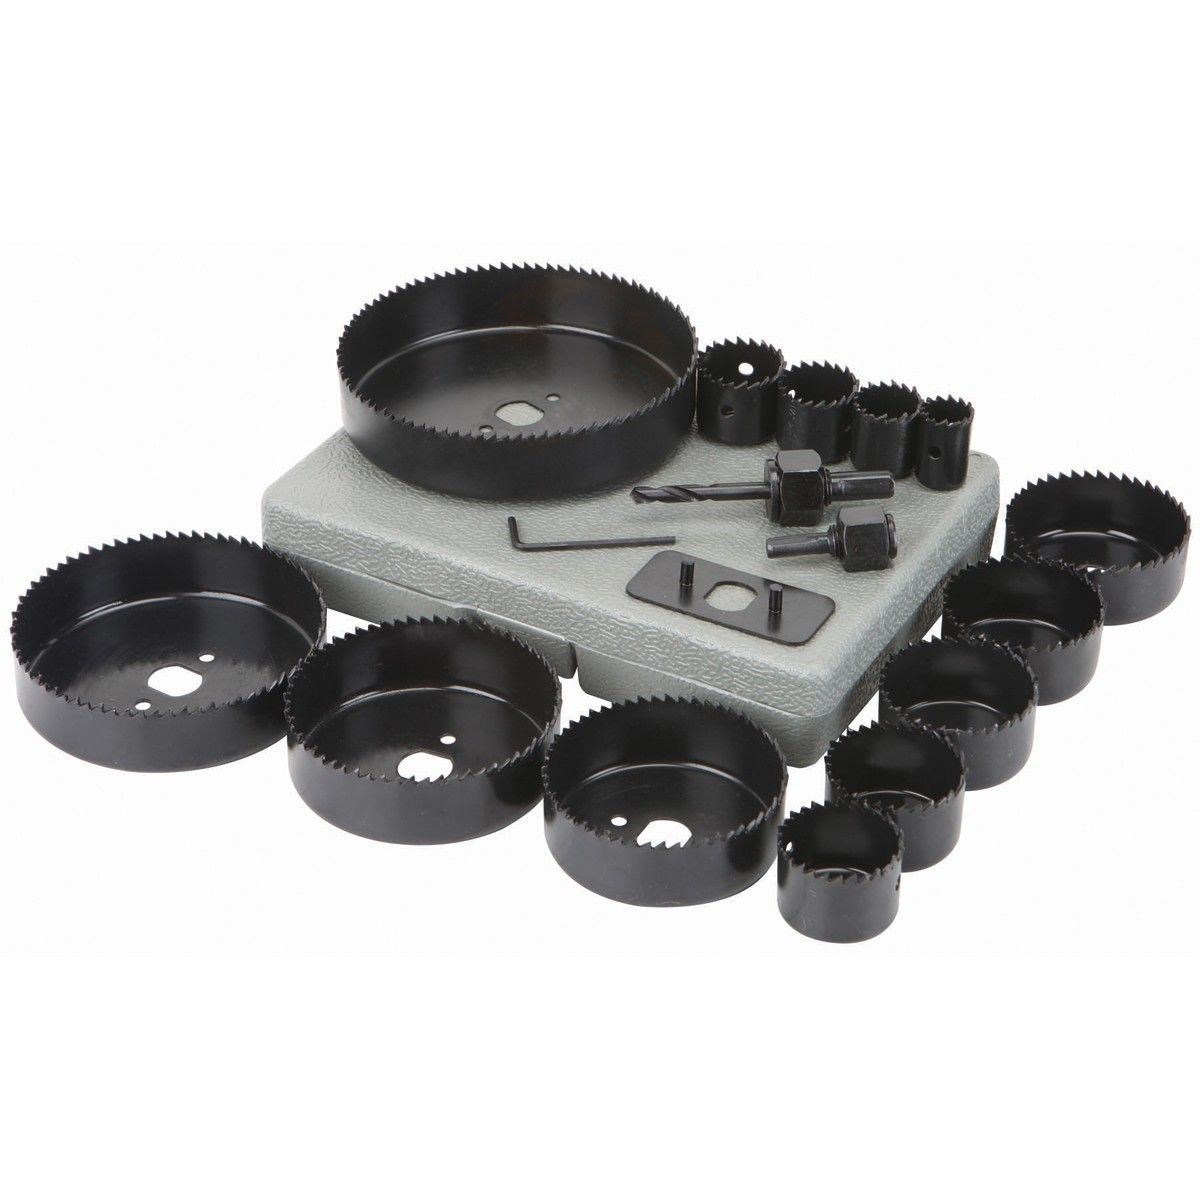 3 4 In 5 In Carbon Steel Hole Saw Set 18 Pc With Images Hole Saw Carbon Steel Saw Accessories